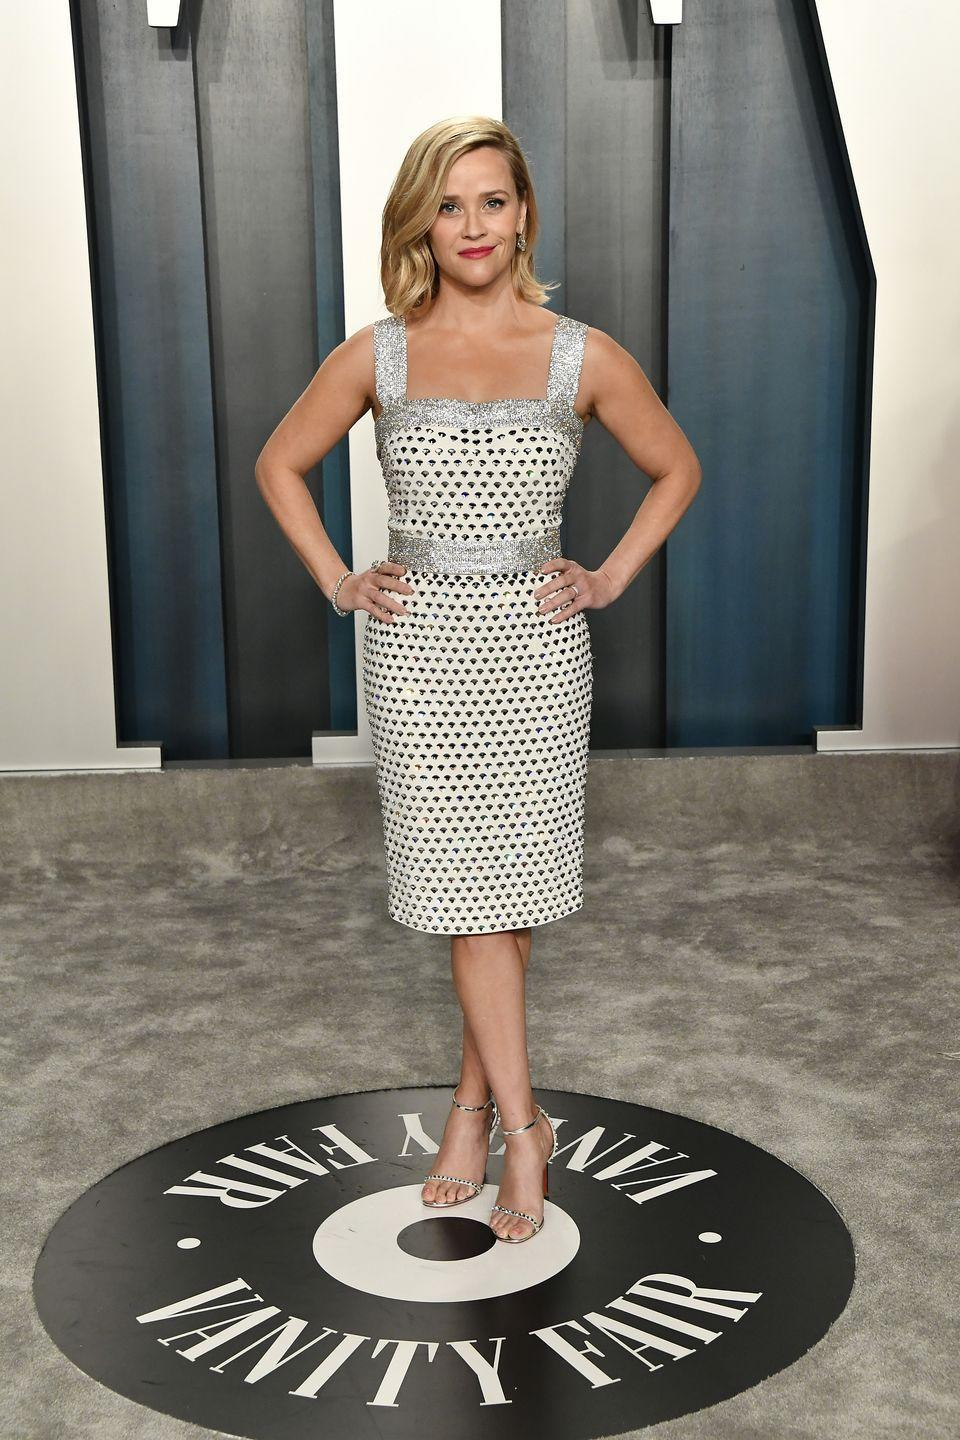 <p>The producer/actress was all about glitz and glamour at the Vanity Fair Oscars After Party in this Dolce and Gabbana cocktail dress.</p>